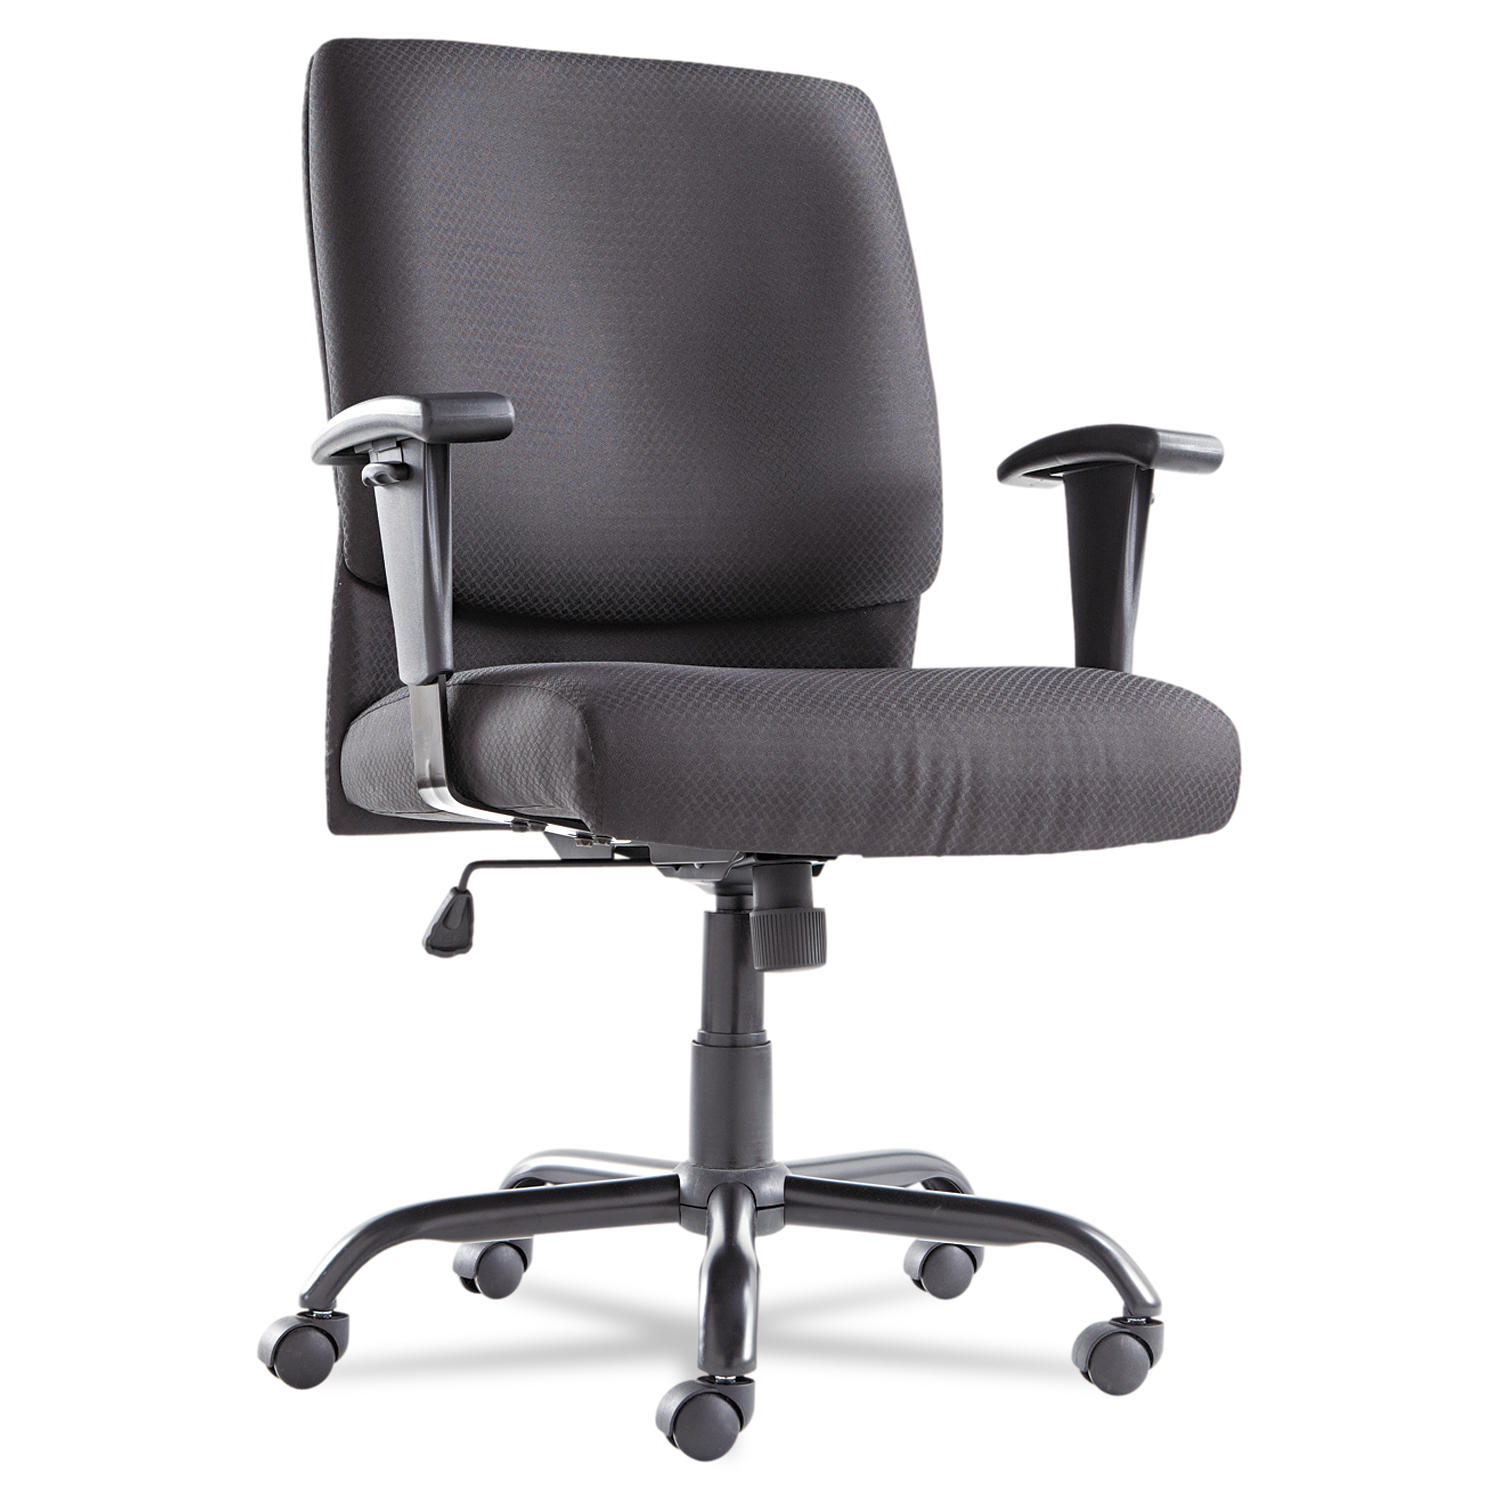 OIF Big & Tall Mid-Back Swivel/Tilt Chair